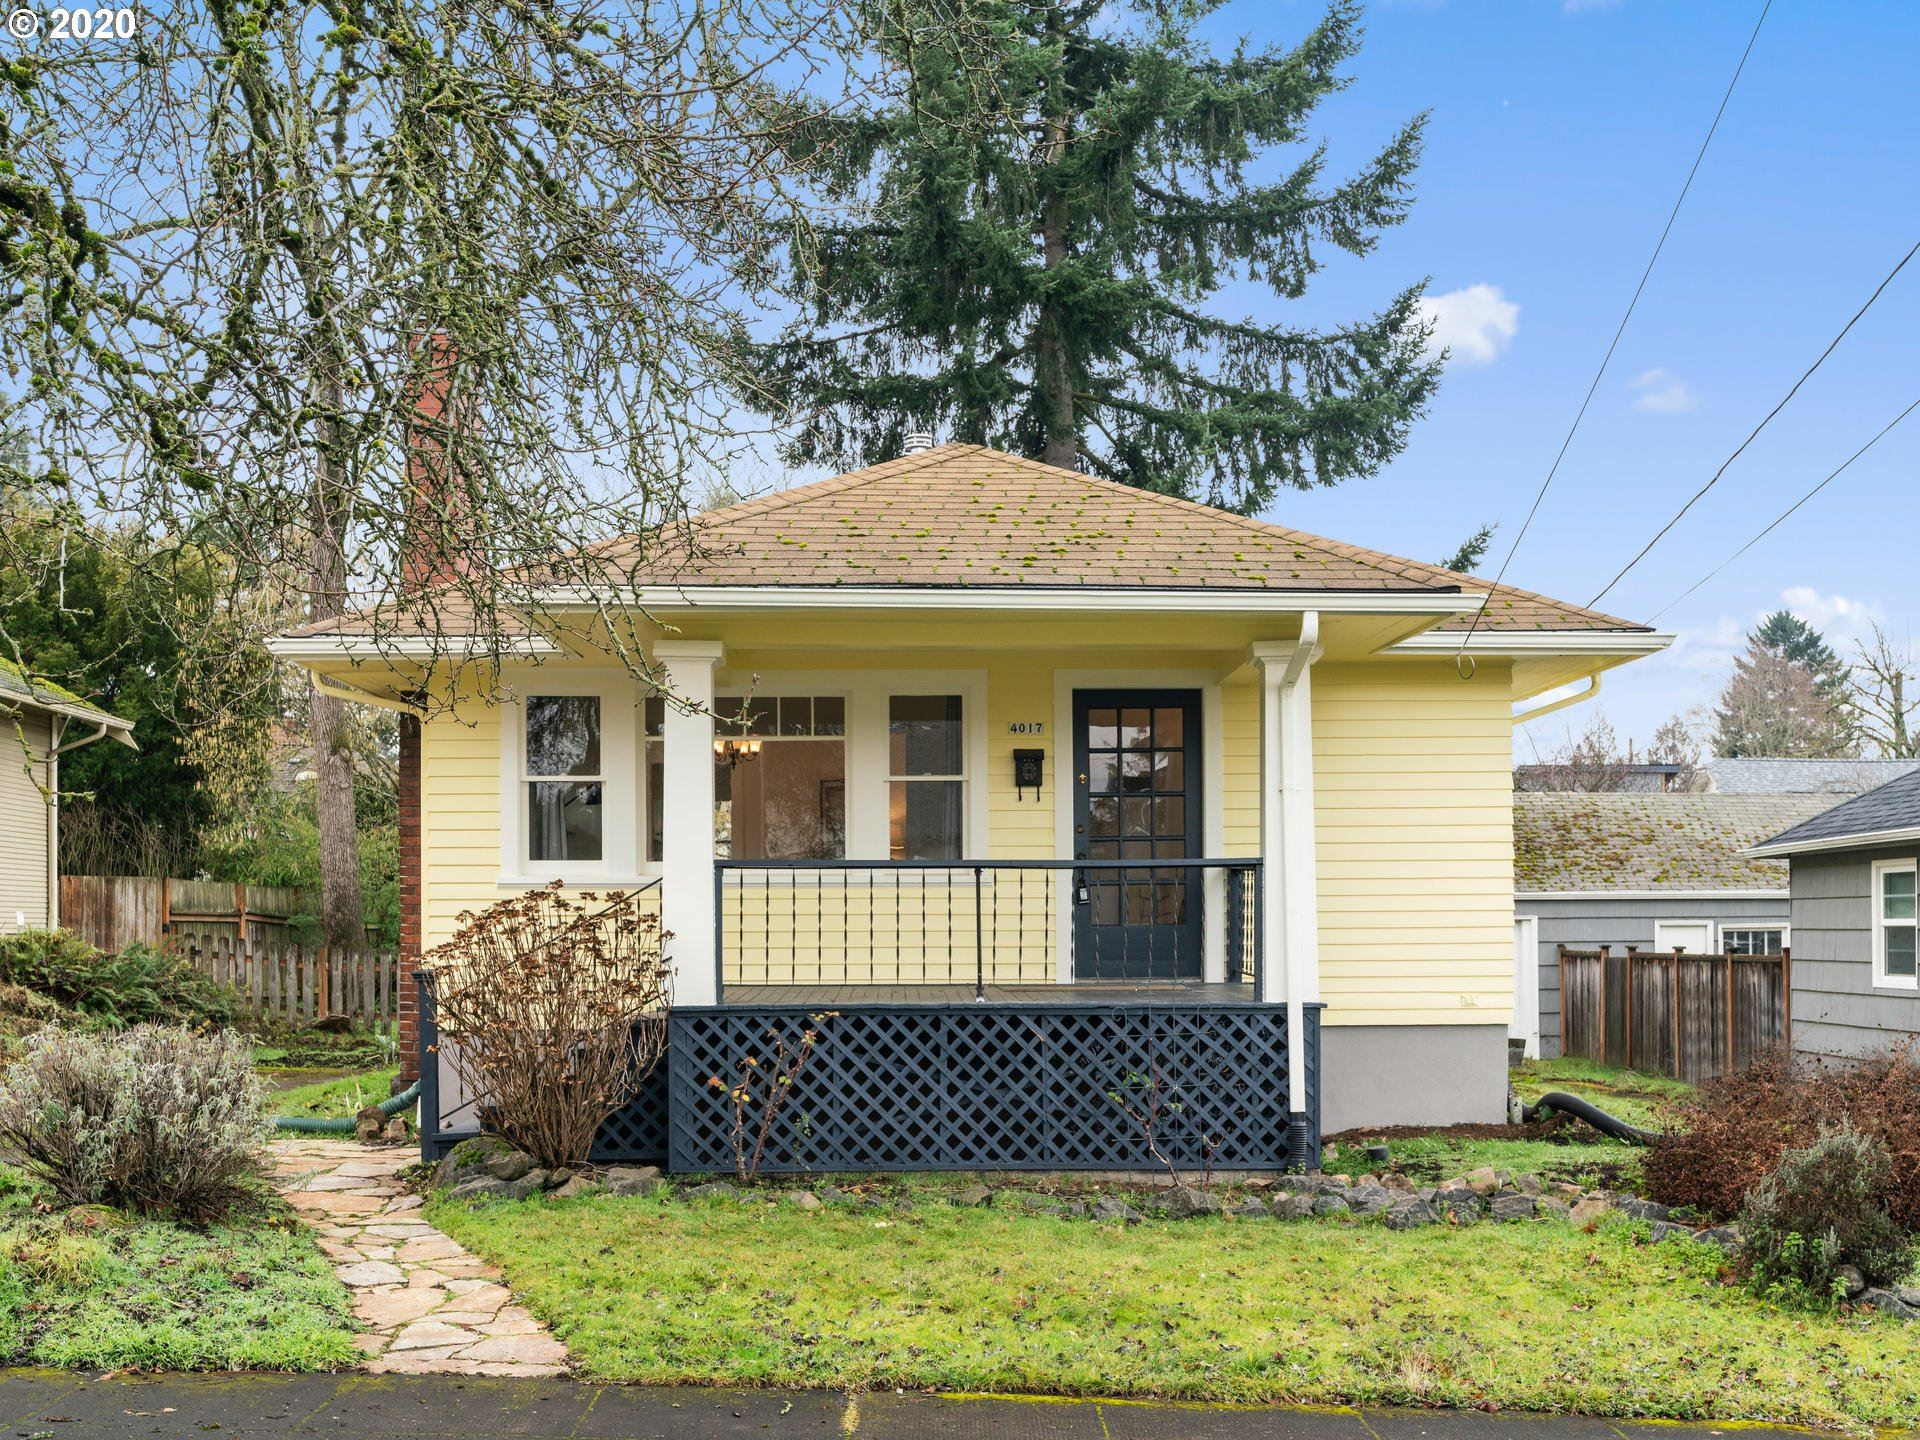 4017 NE 64TH AVE, Portland, OR 97213 - MLS#: 19684816